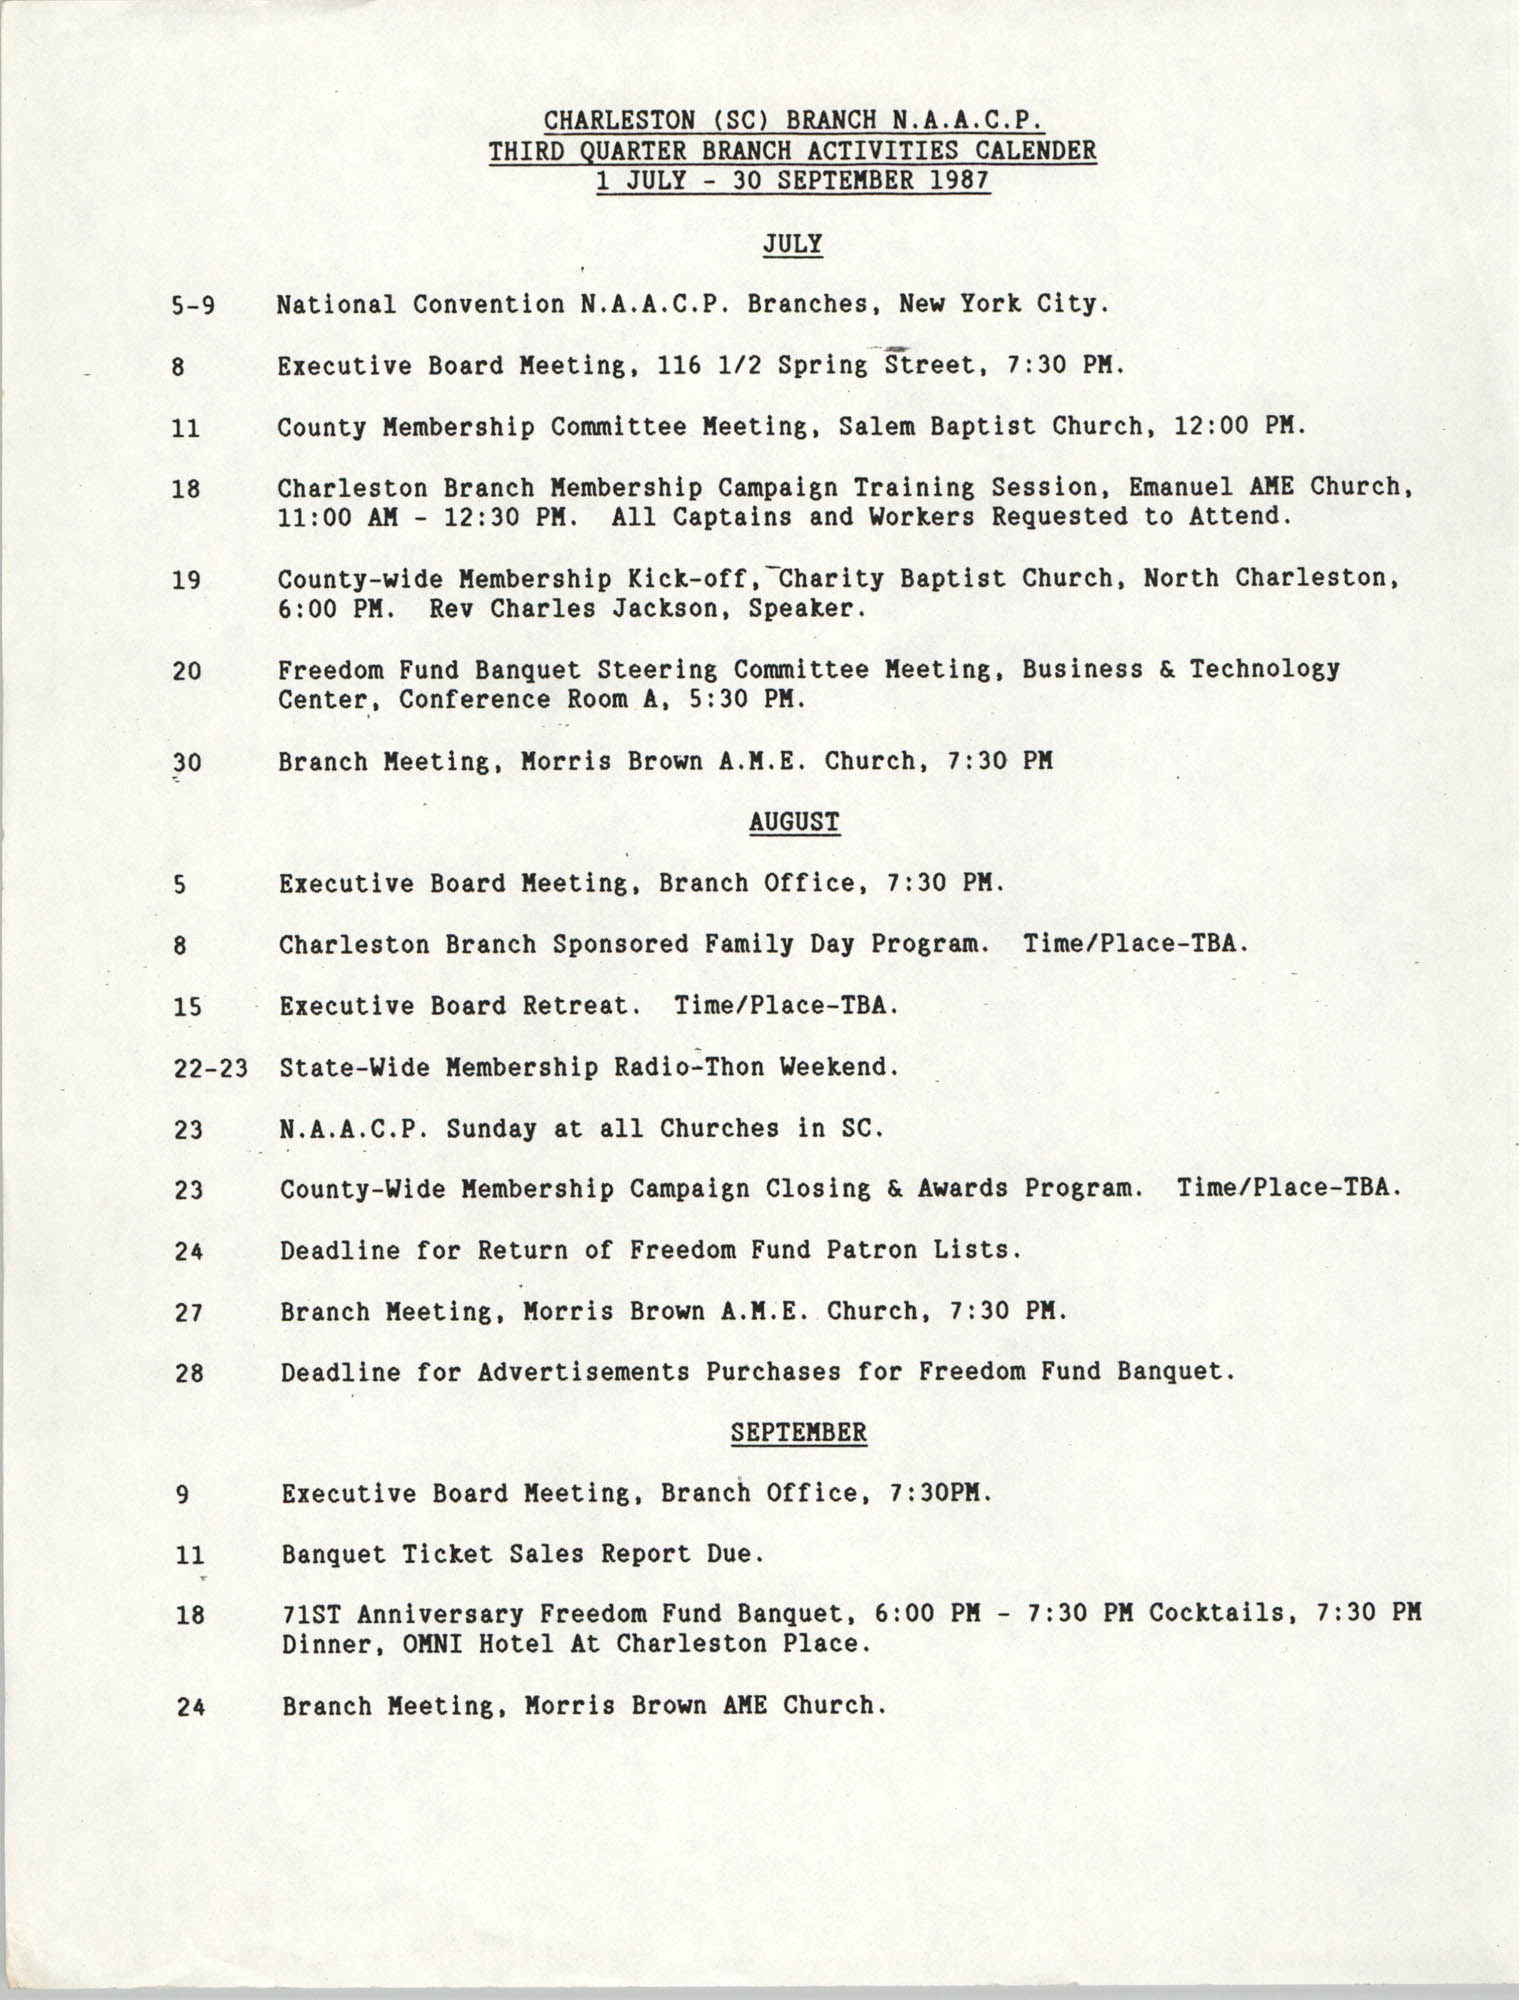 Third Quarter Branch Activities Calendar, National Association for the Advancement of Colored People, 1987